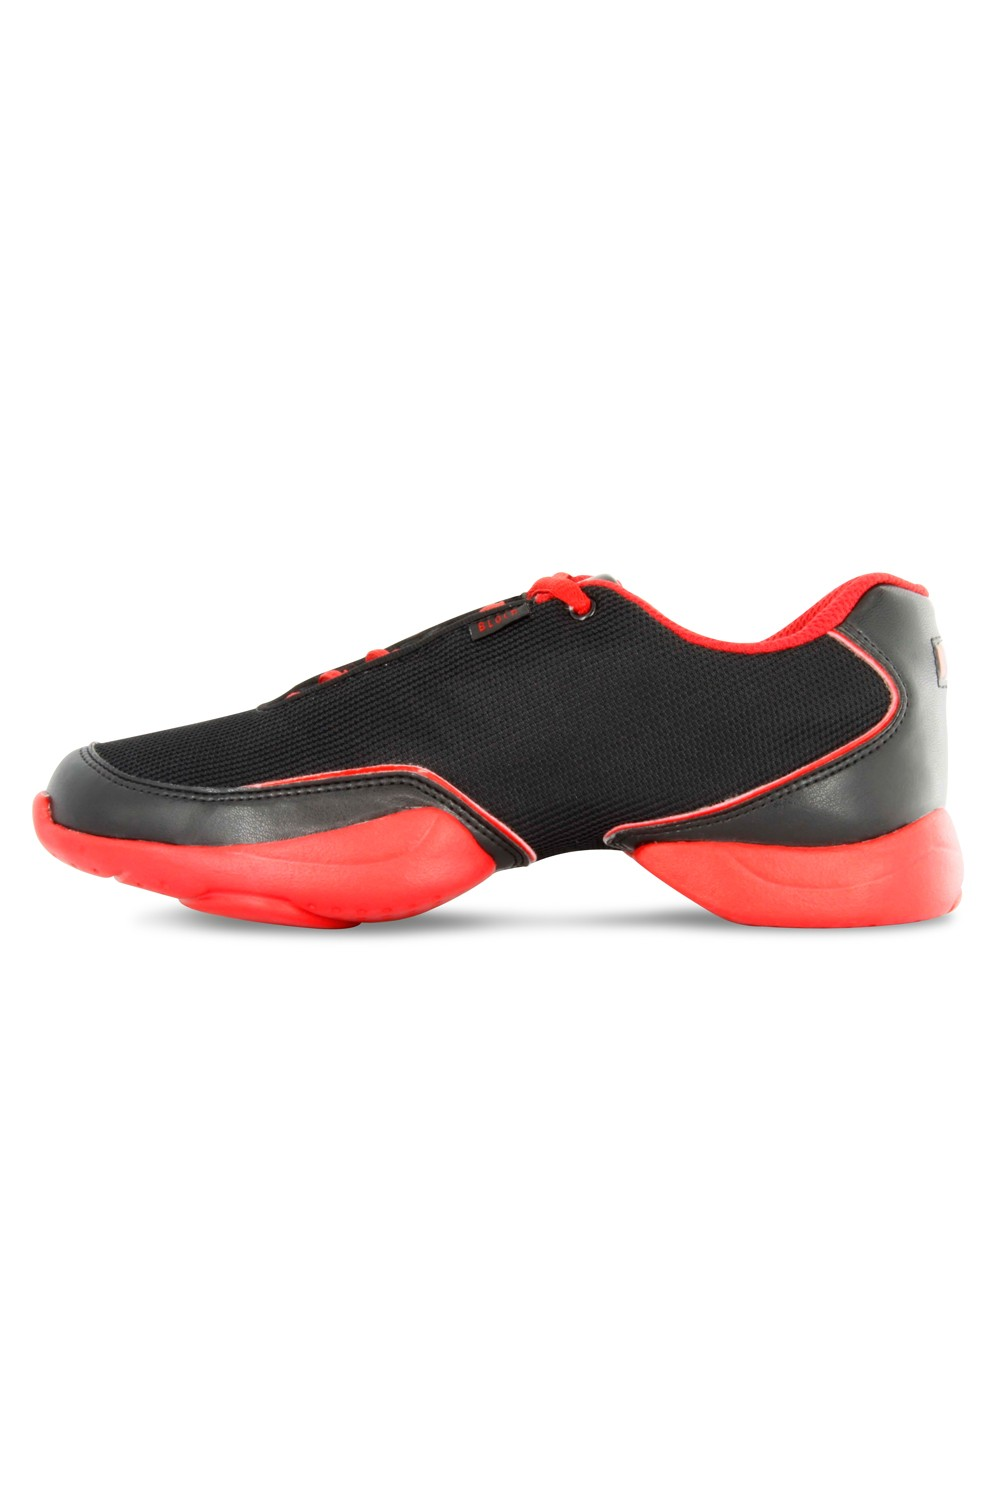 Flash Dance Trainers Split Sole Dance Shoes